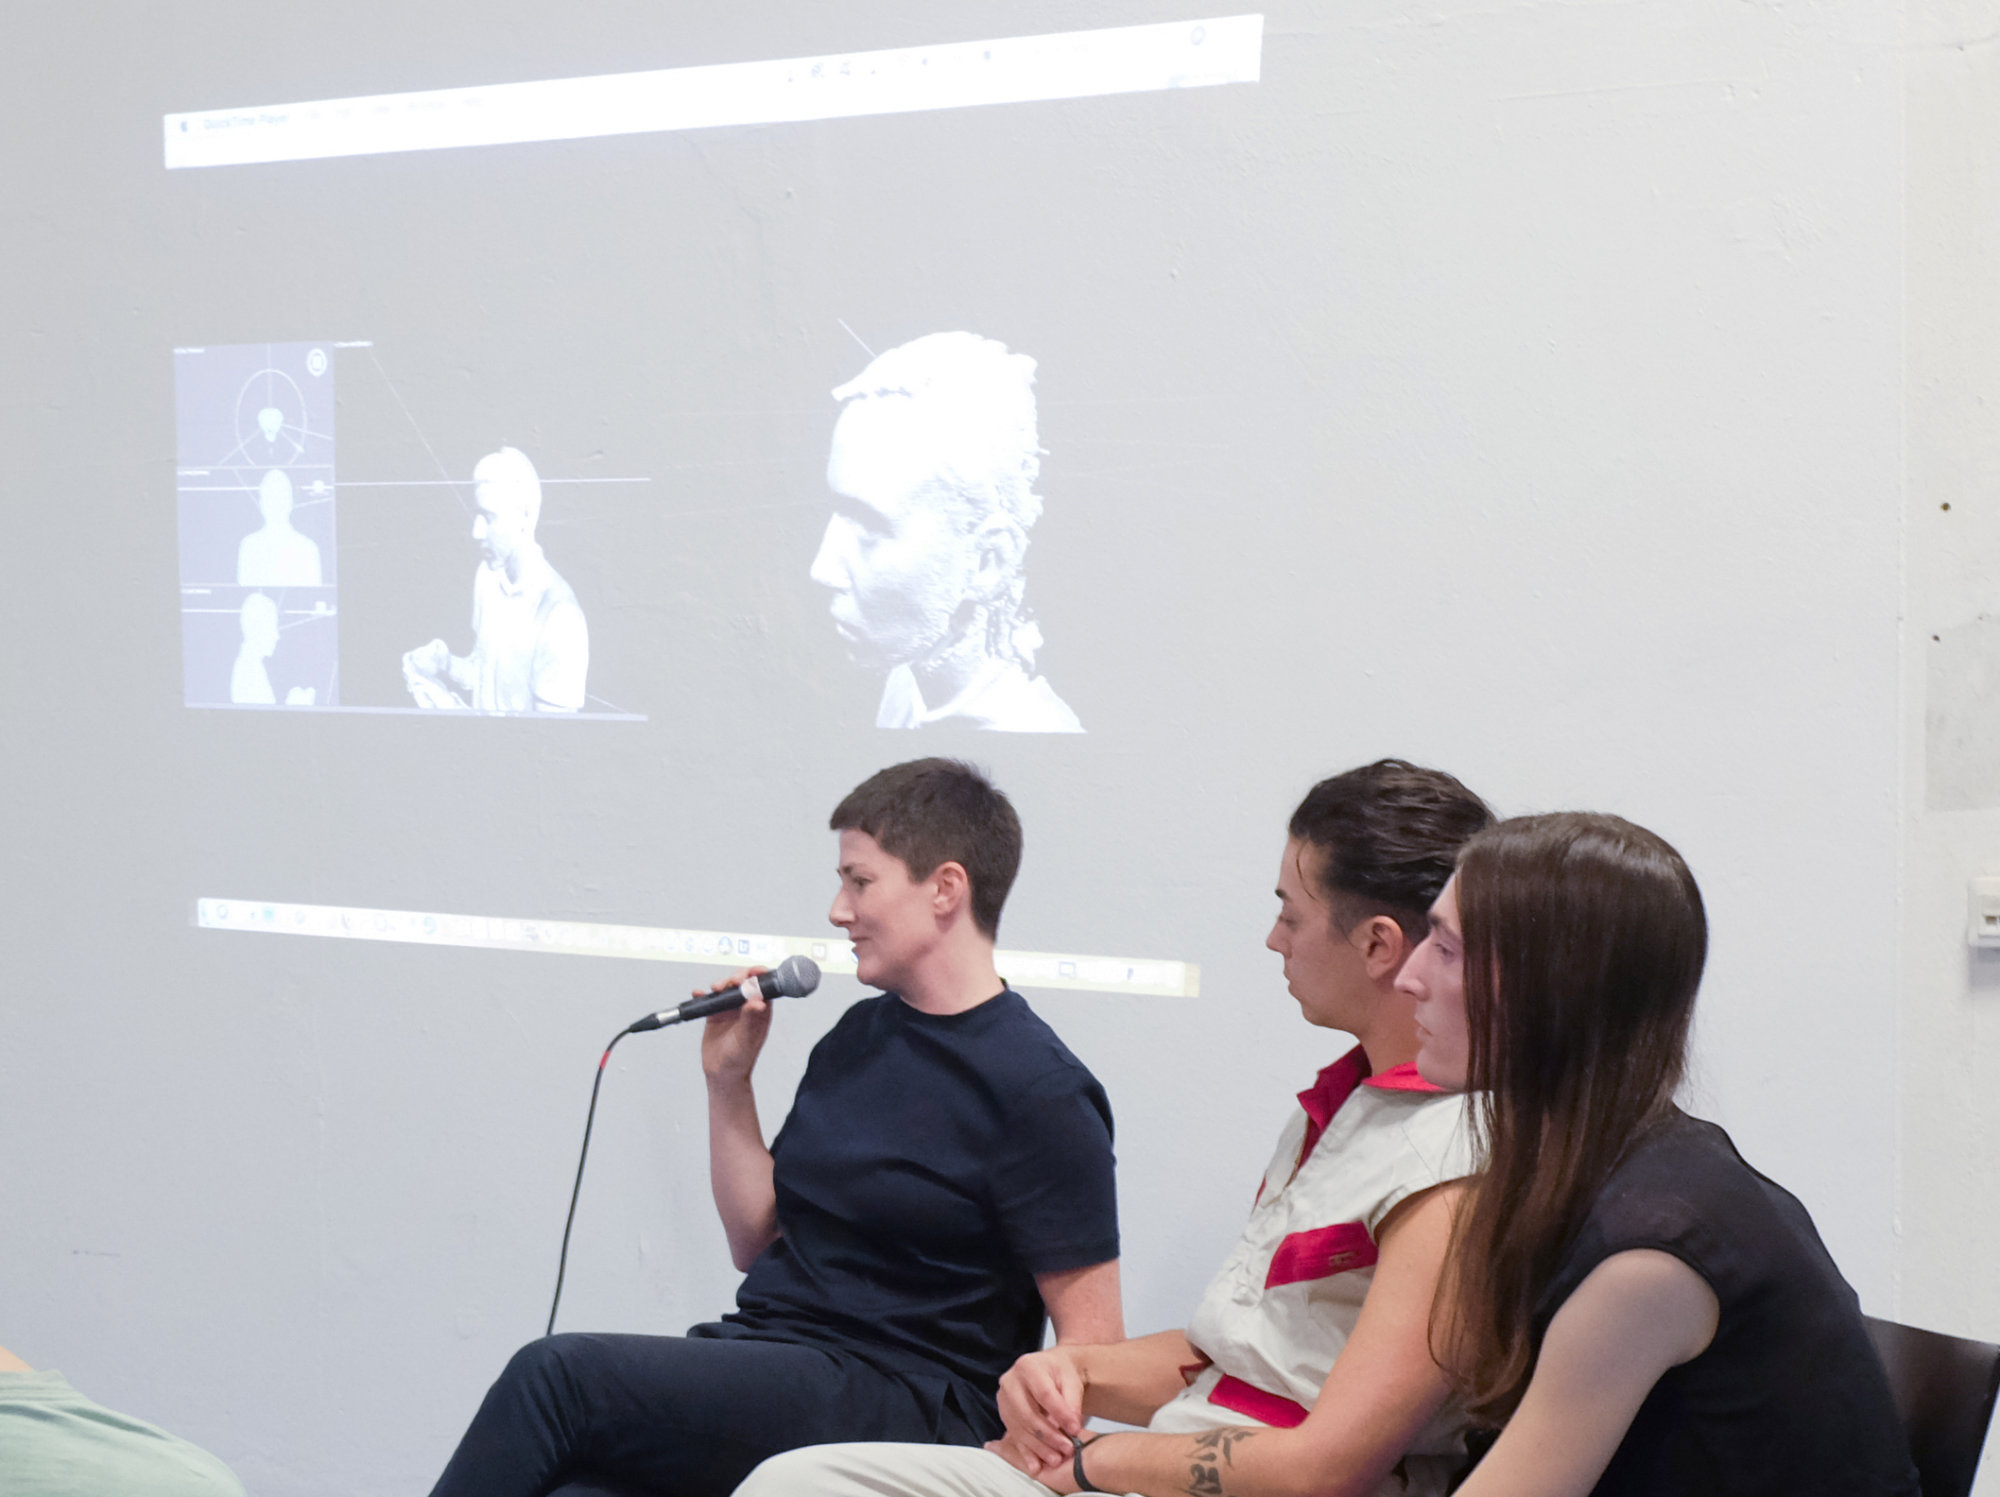 "<p><b>Dreaming Trans-futurism and Reality Now<br /> </b><b></b><strong>Talk</strong> with Doireann O'Malley (Berlin Art Prize 2018 nominee), Lou Drago (author, curator), and Pedro Marum (curator, film programmer, DJ) of Xenoentities Network, Elliott Cennetoglu (lighting designer), Pol Merchan (artist, filmmaker), Mateja Hoffman (photographer, stylist)</p> <p>Doireann O'Malley, nominated artist and director of <i>Prototypes</i> in conversation with the creators and protagonists of the film about the methodologies, themes, experiences and processes explored in the work Actor Lou Drago on <i>Prototypes</i>: ""Within the first moments of <i>Prototypes</i> the viewer is confronted with the absurdity of society's reduction of gender to a binary system as a voiceover enumerates the various chromosome composites that humans possess, several combinations of which do not equate to the limited categorizations of male/female. It is quickly made clear that there is much more involved in understanding the complexity of gender.""</p>"